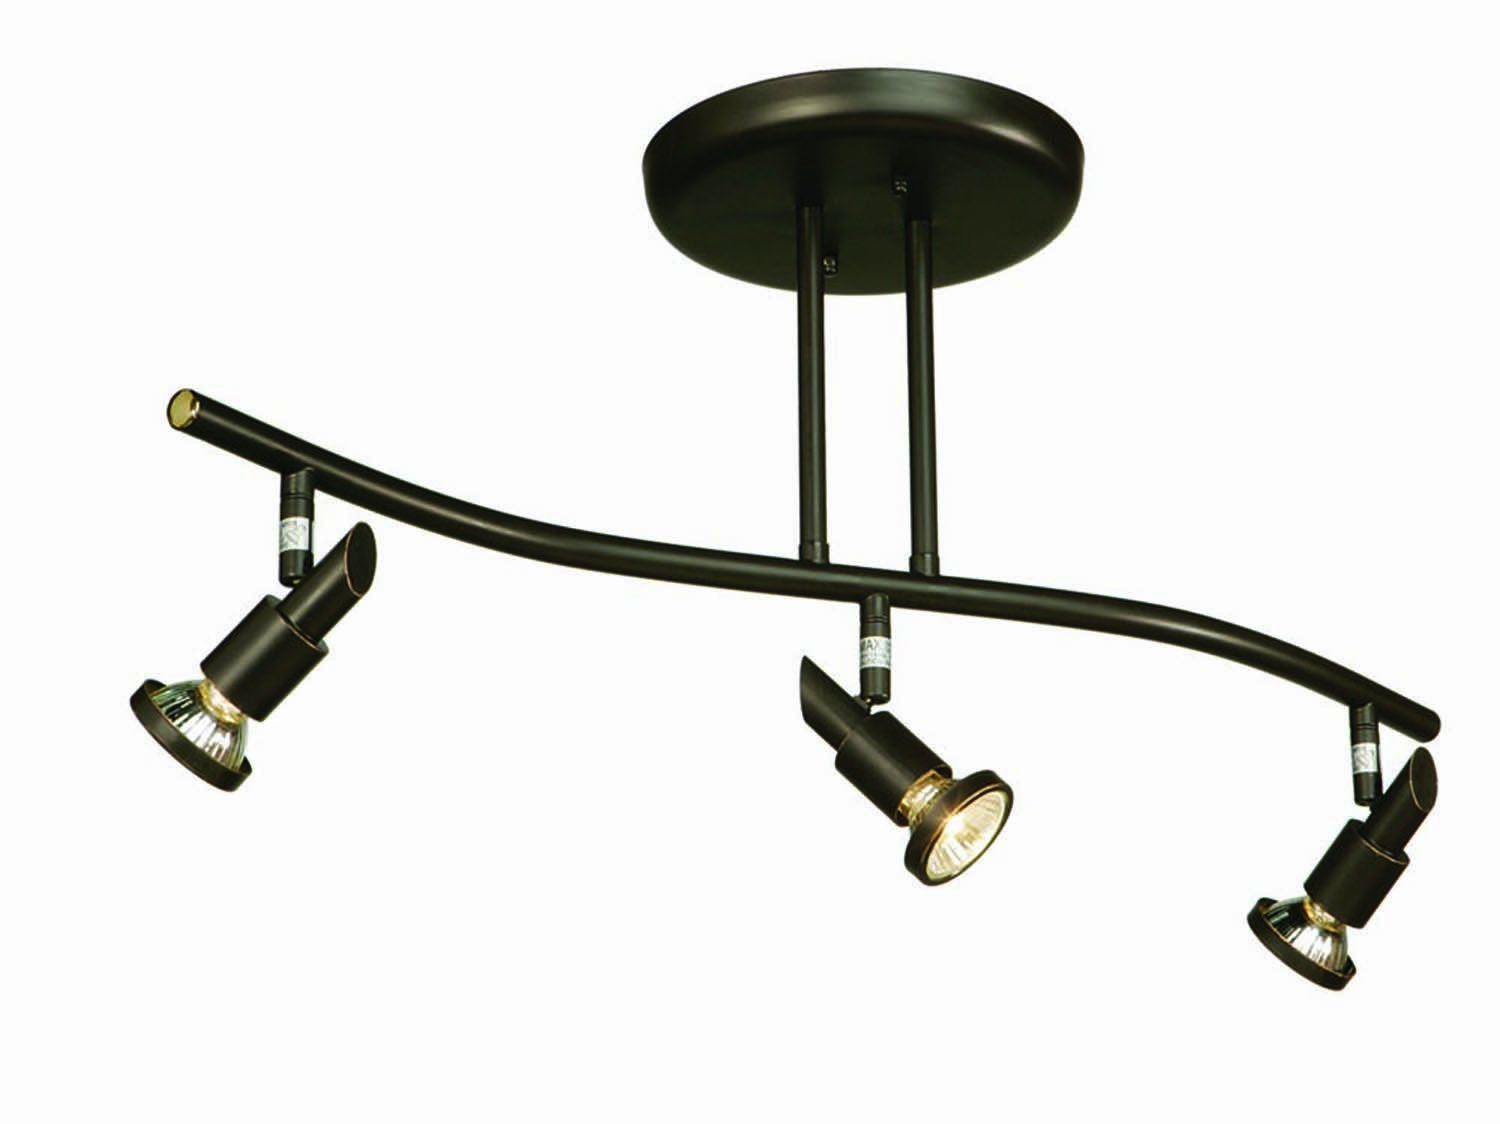 Artcraft Lighting Shuttle 3-Light Wavy Track Light, Oil-Rubbed Bronze by Artcraft Lighting